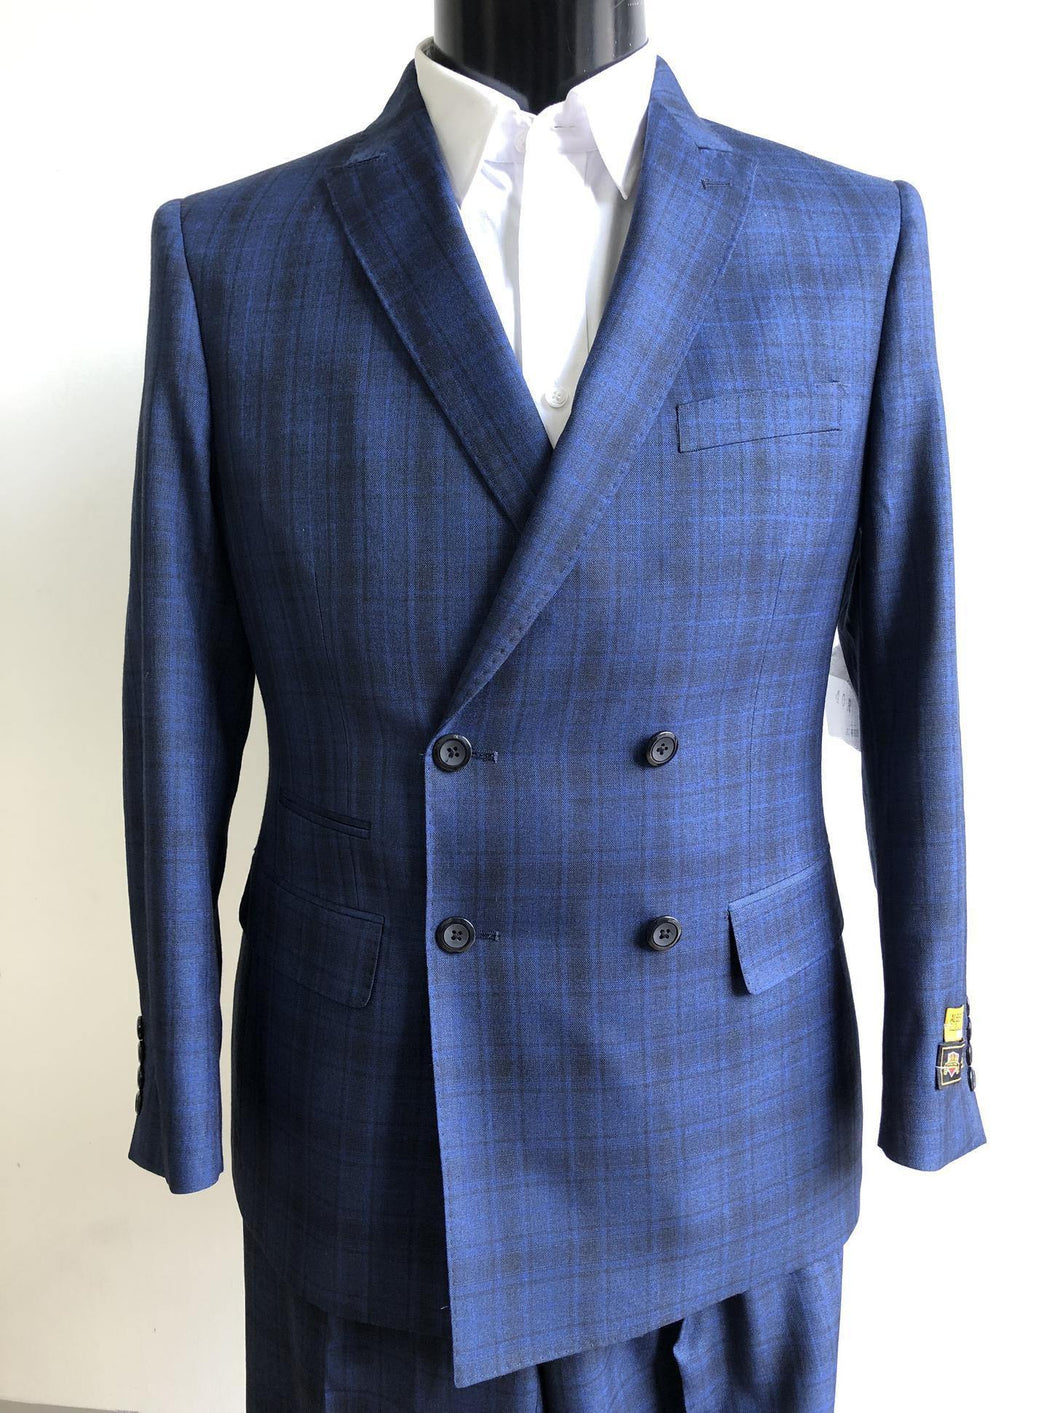 Mens Indigo Plaid Suits Downtown Los angeles - Suits LA $149